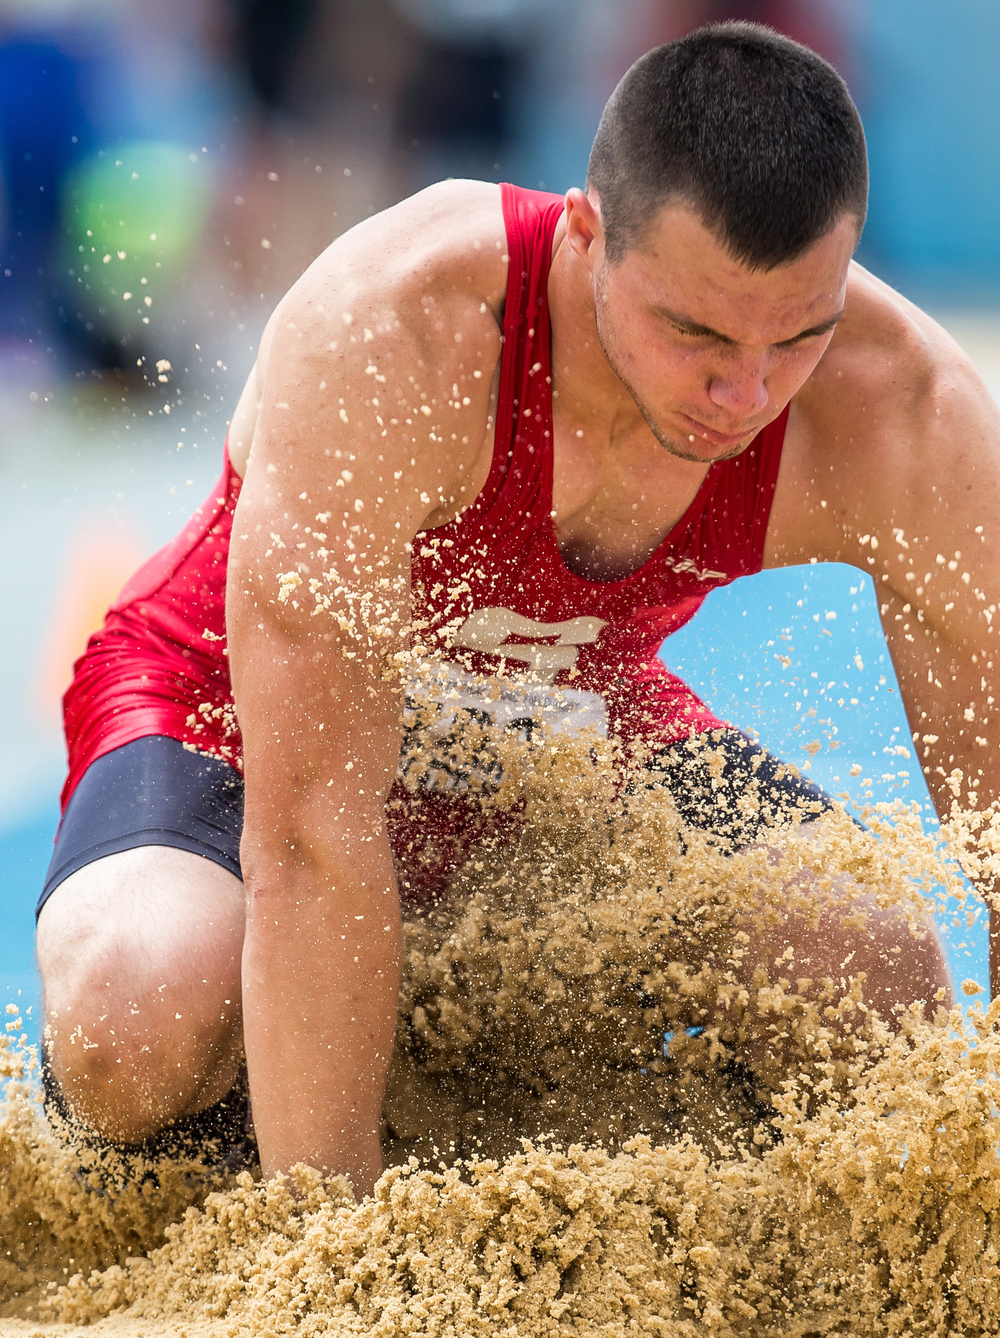 Staunton's Marcus Sitko hits the sand while competing in the Class 1A Triple Jump during the IHSA Boys Track and Field State Finals at O'Brien Stadium, Saturday, May 30, 2015, in Charleston, Ill. Sitko won the event with a best jump of 46-02.25. Justin L. Fowler/The State Journal-Register